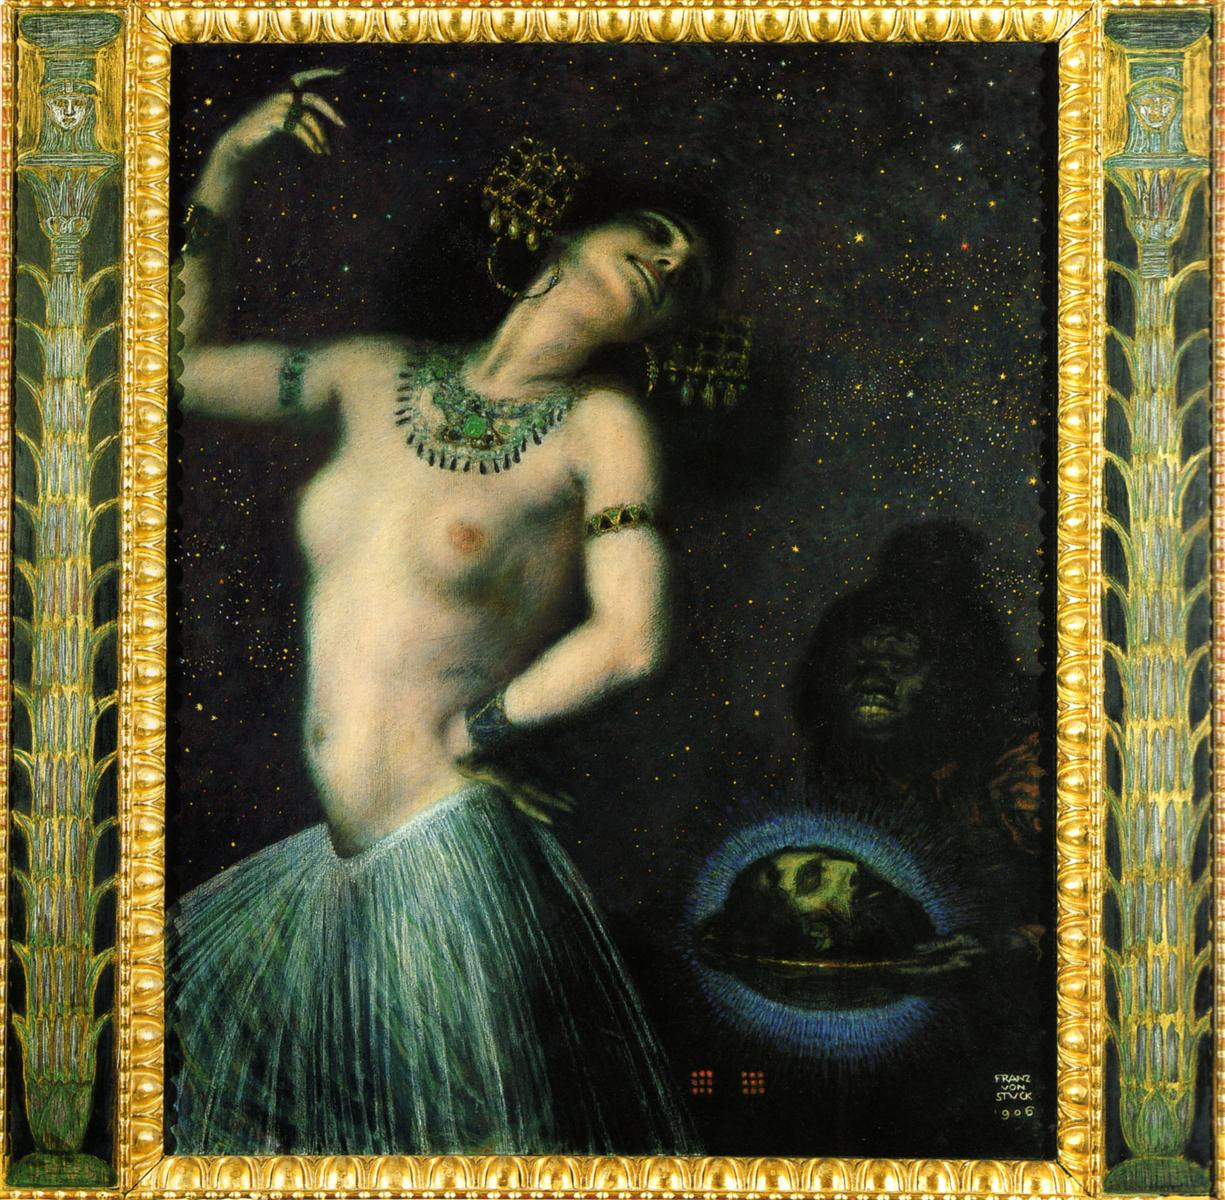 http://uploads0.wikipaintings.org/images/franz-stuck/salome-1906.jpg!HD.jpg